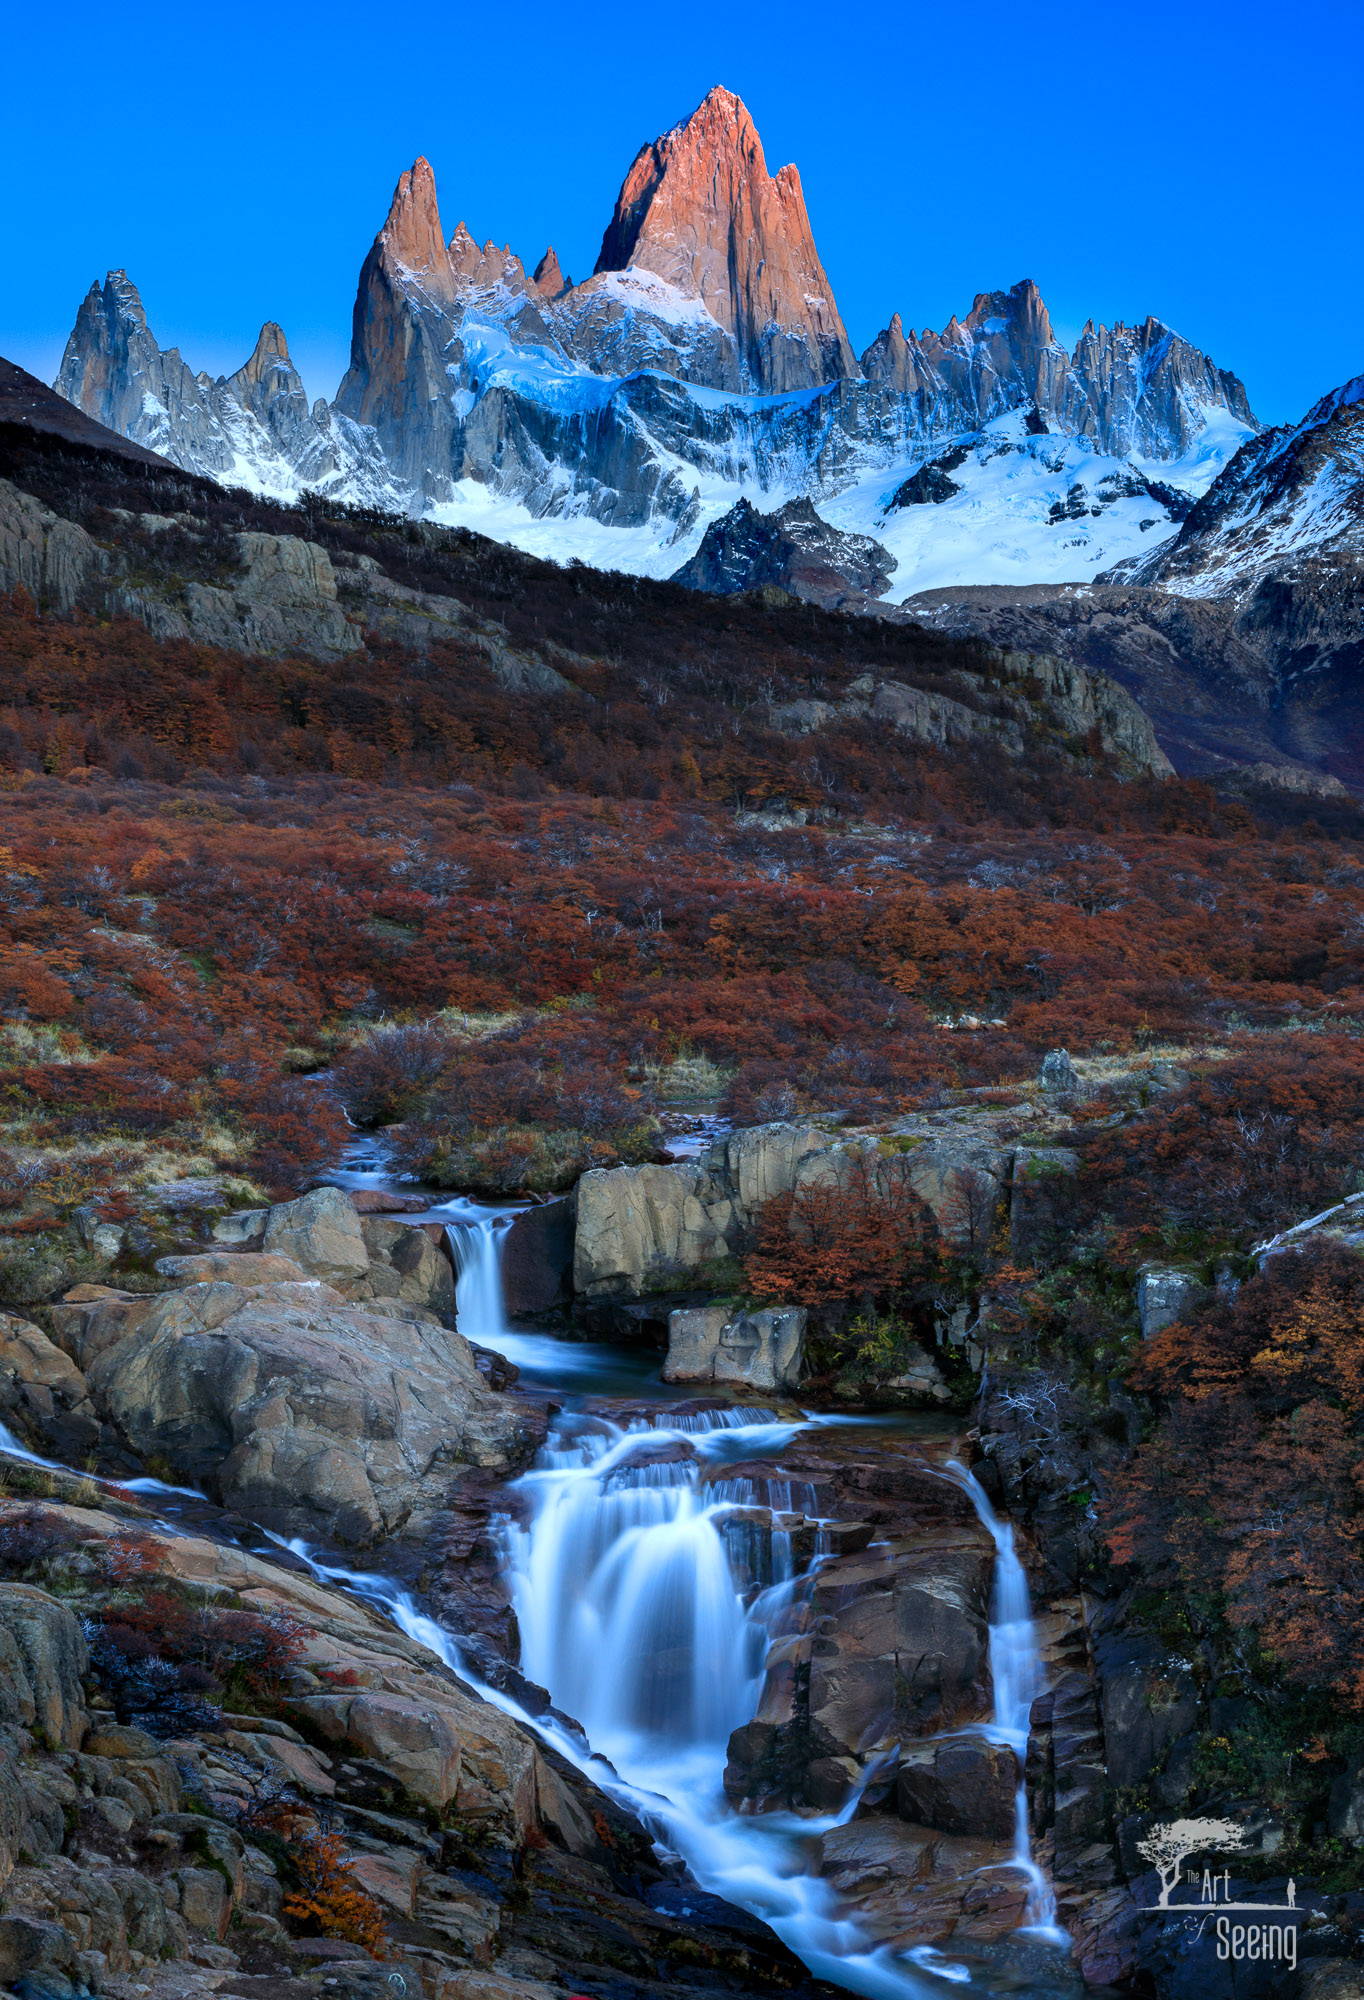 patagonia photography tips 1 image